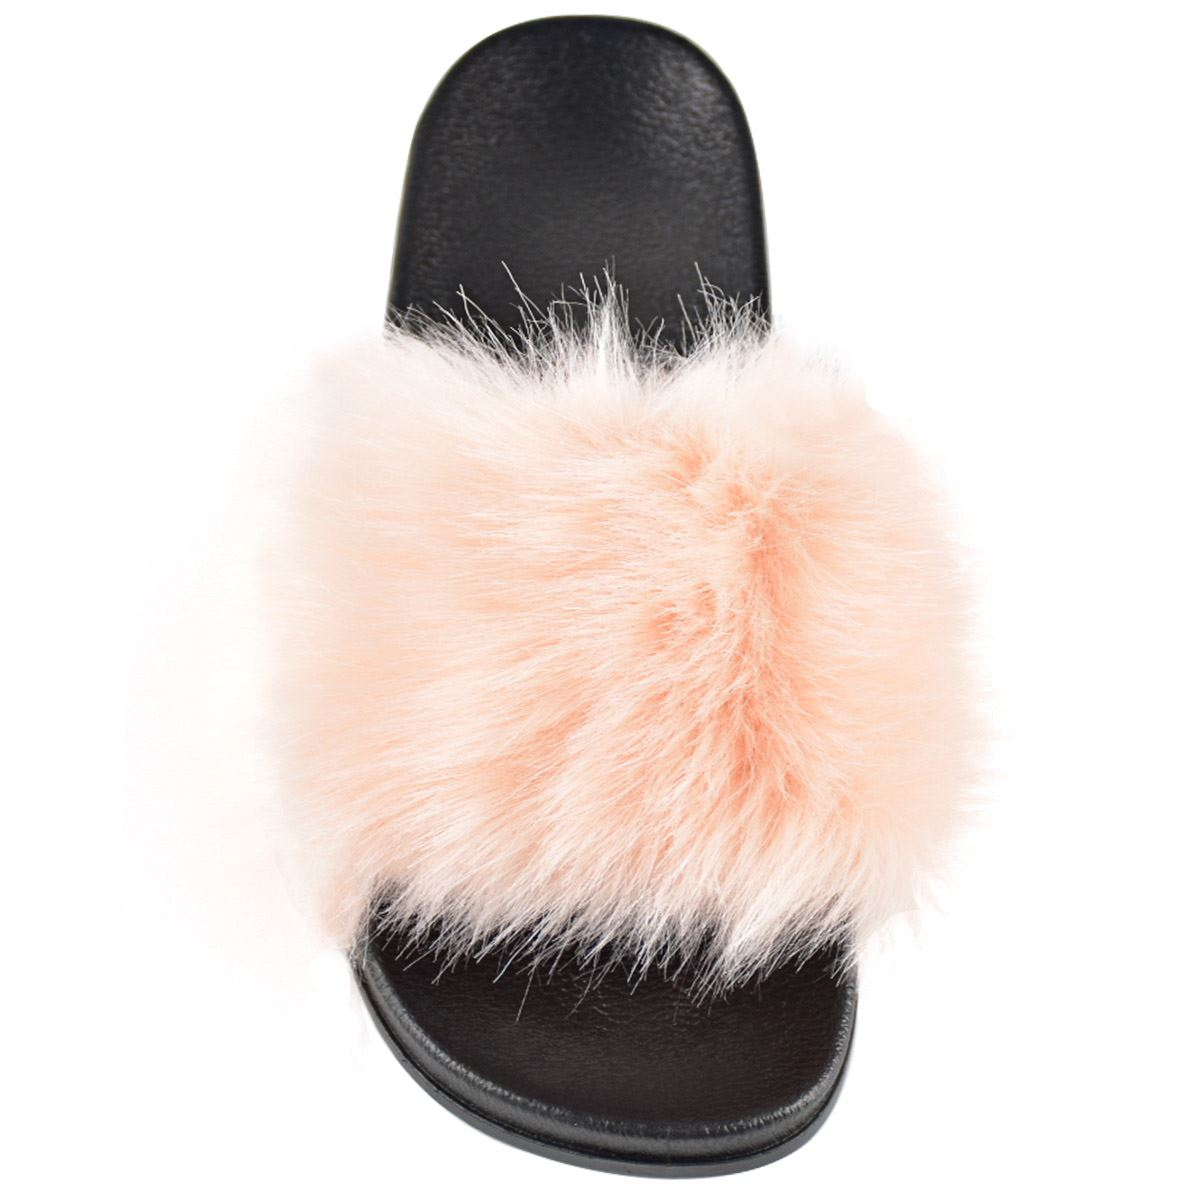 Womens New Fluffy Thick Faux Fur Flat Sliders Slides Summer Sandals Comfy Pumps